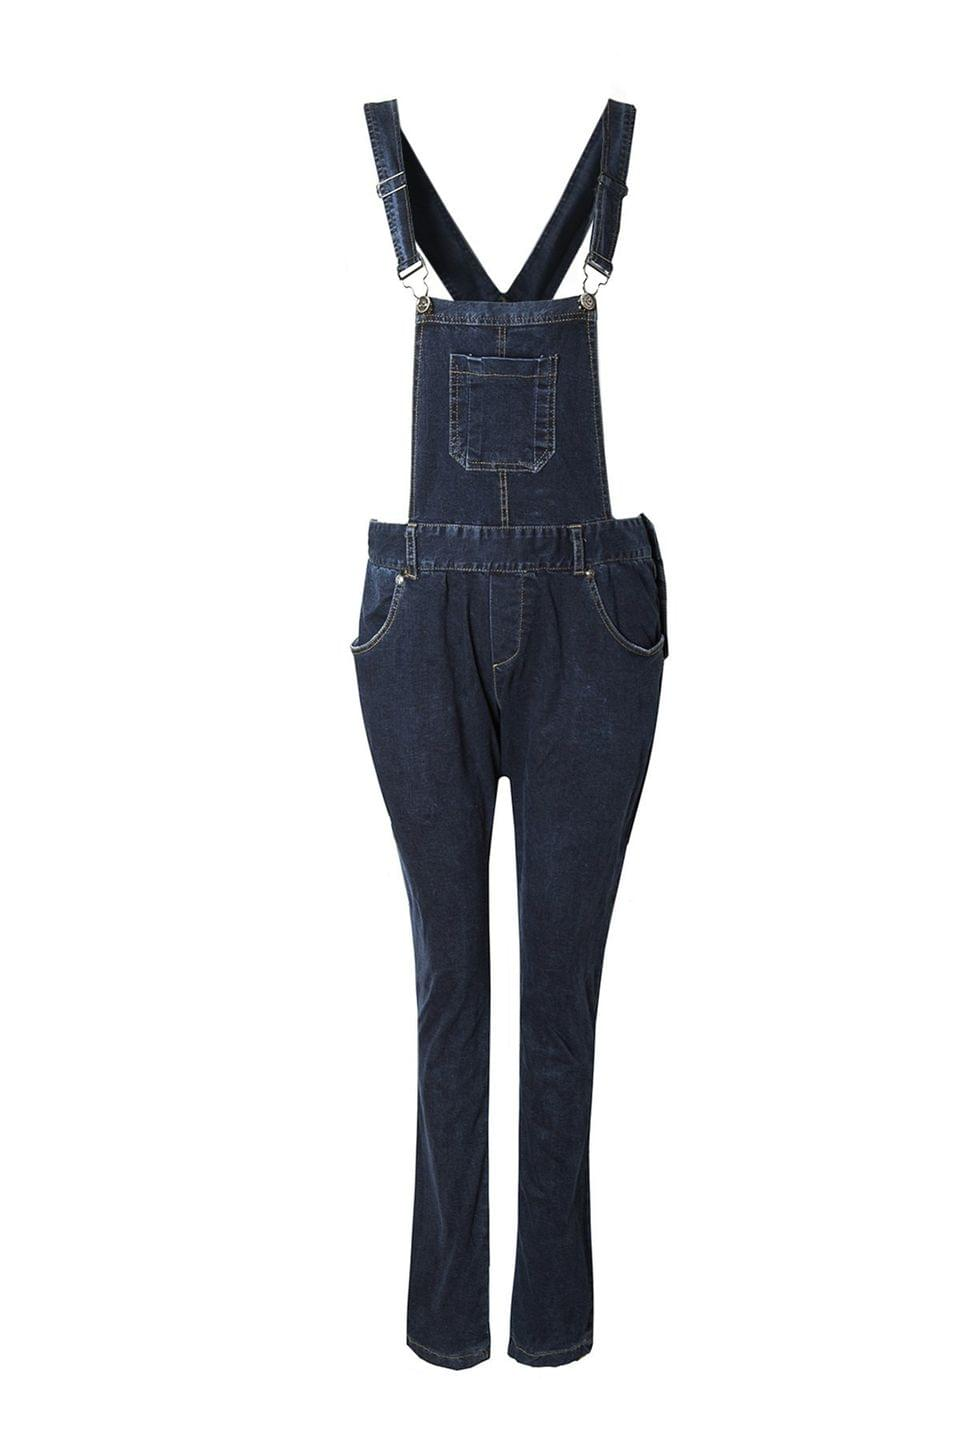 Women's Blue Black Denim Dungarees - Deep Blue Xl